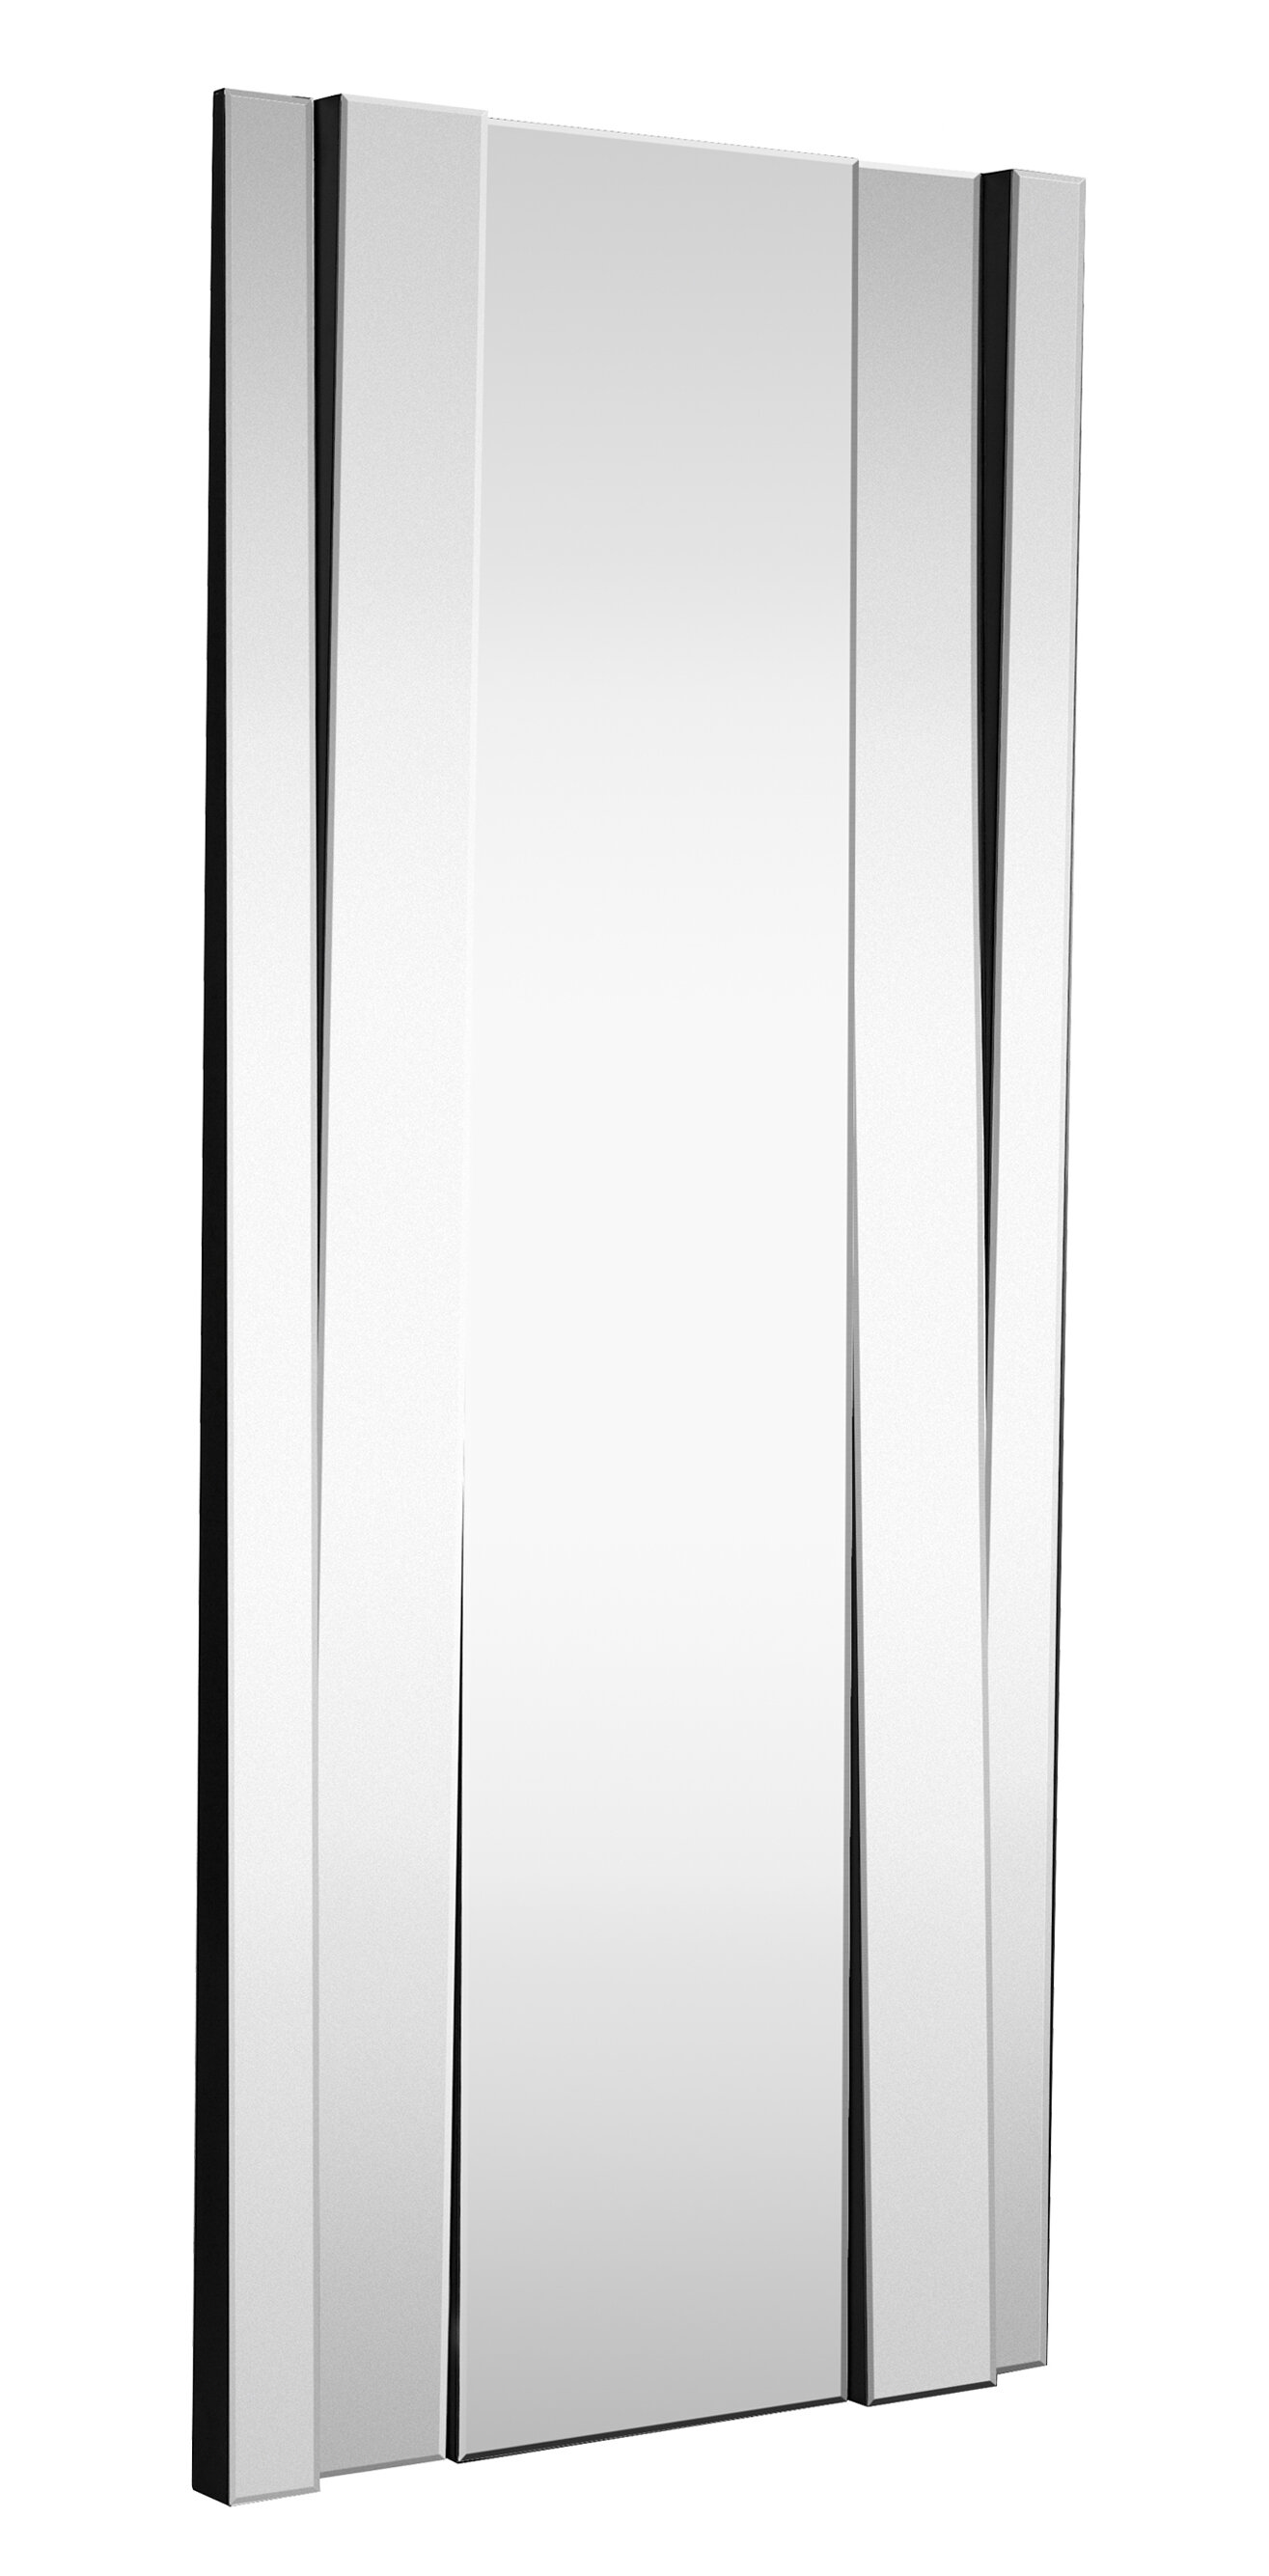 Majestic Mirror Large Modern Rectangular Full Length Angled Beveled